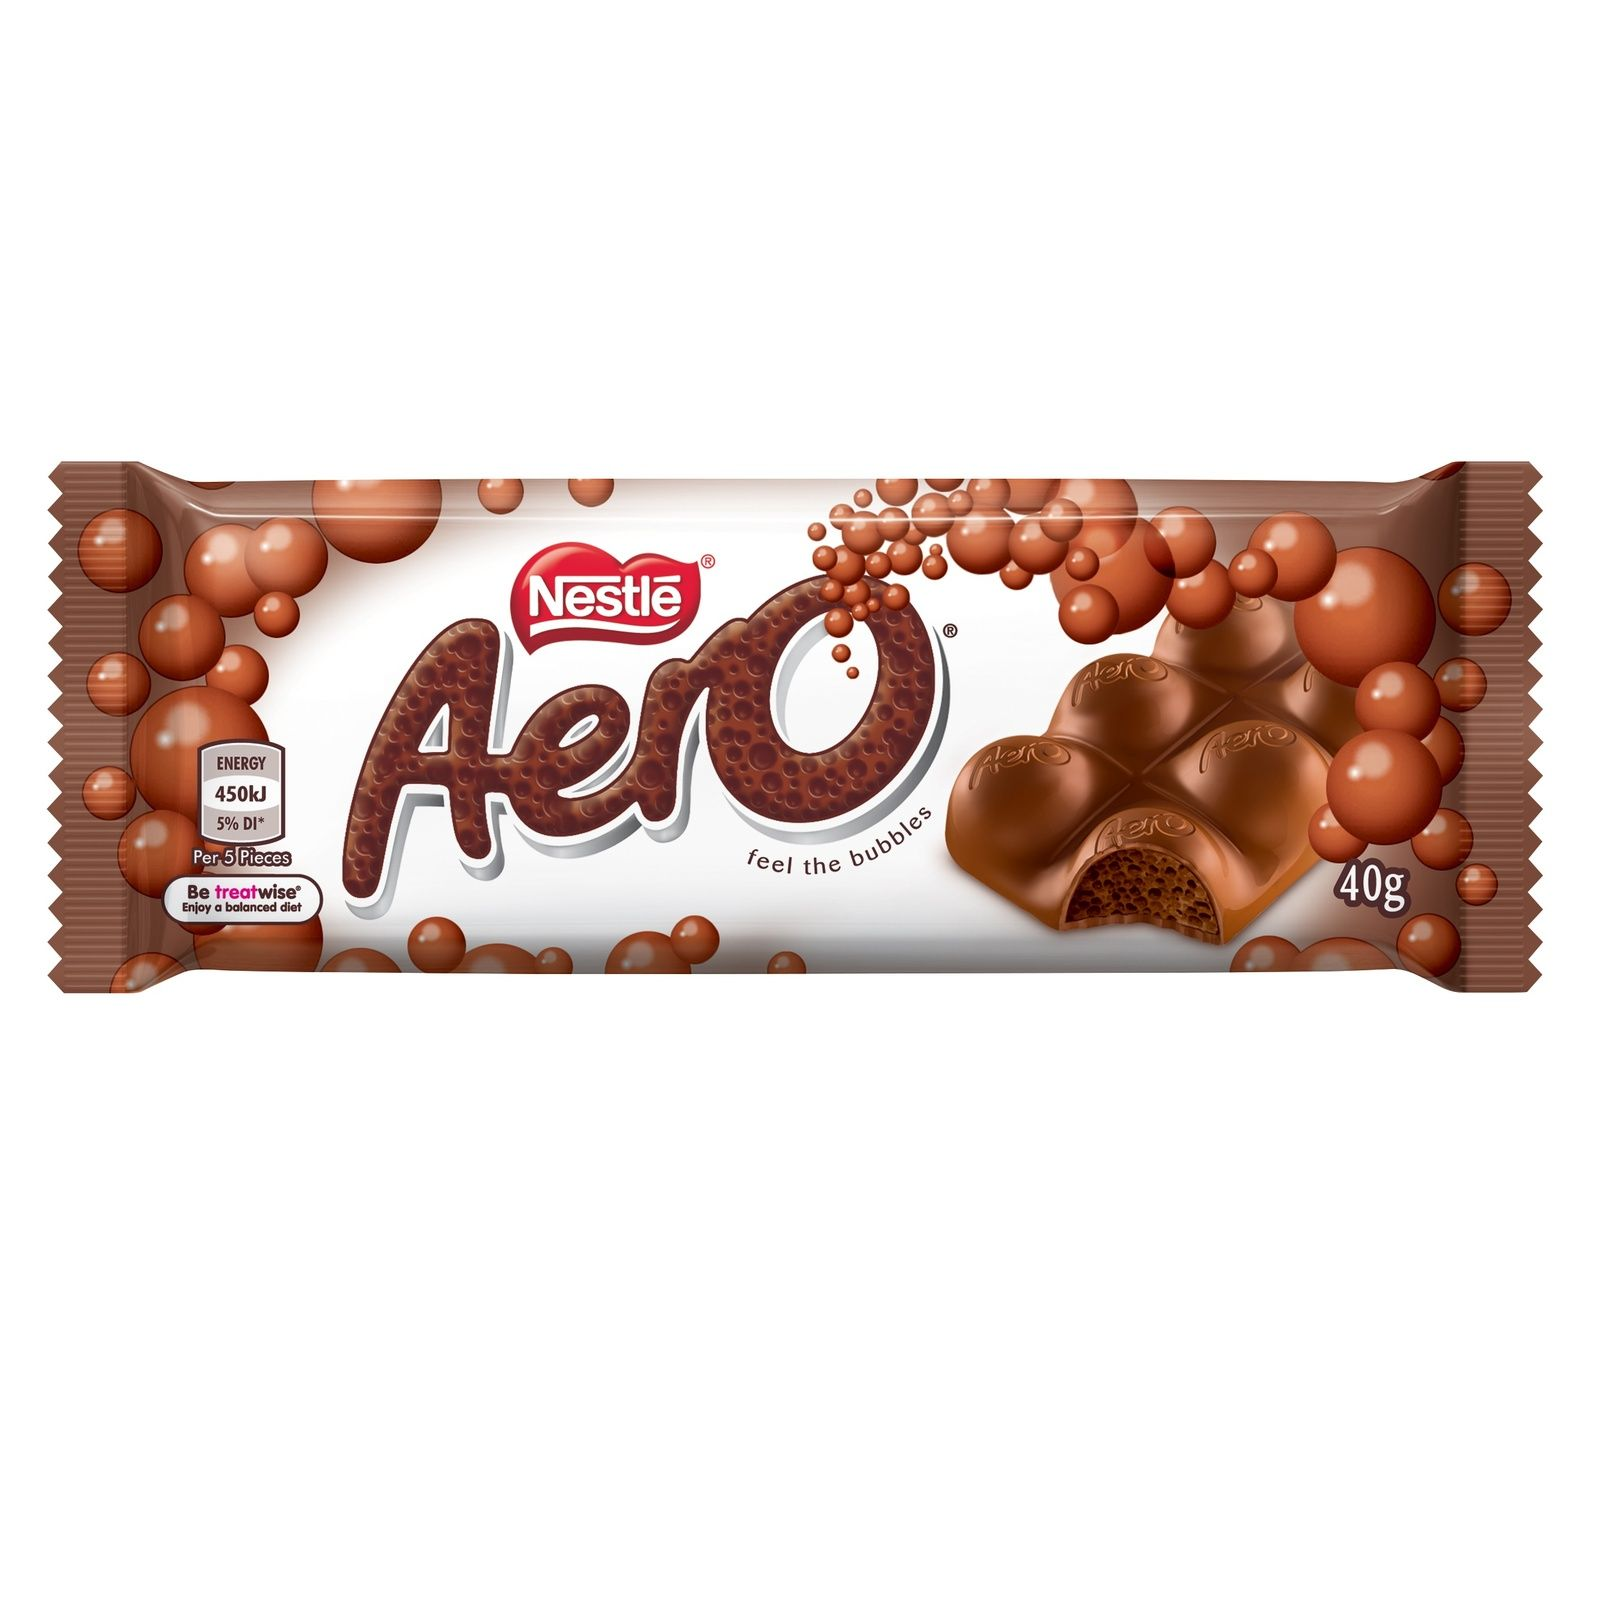 areo chocolate - Google Search | Novelty sign, Bubbles, Novelty